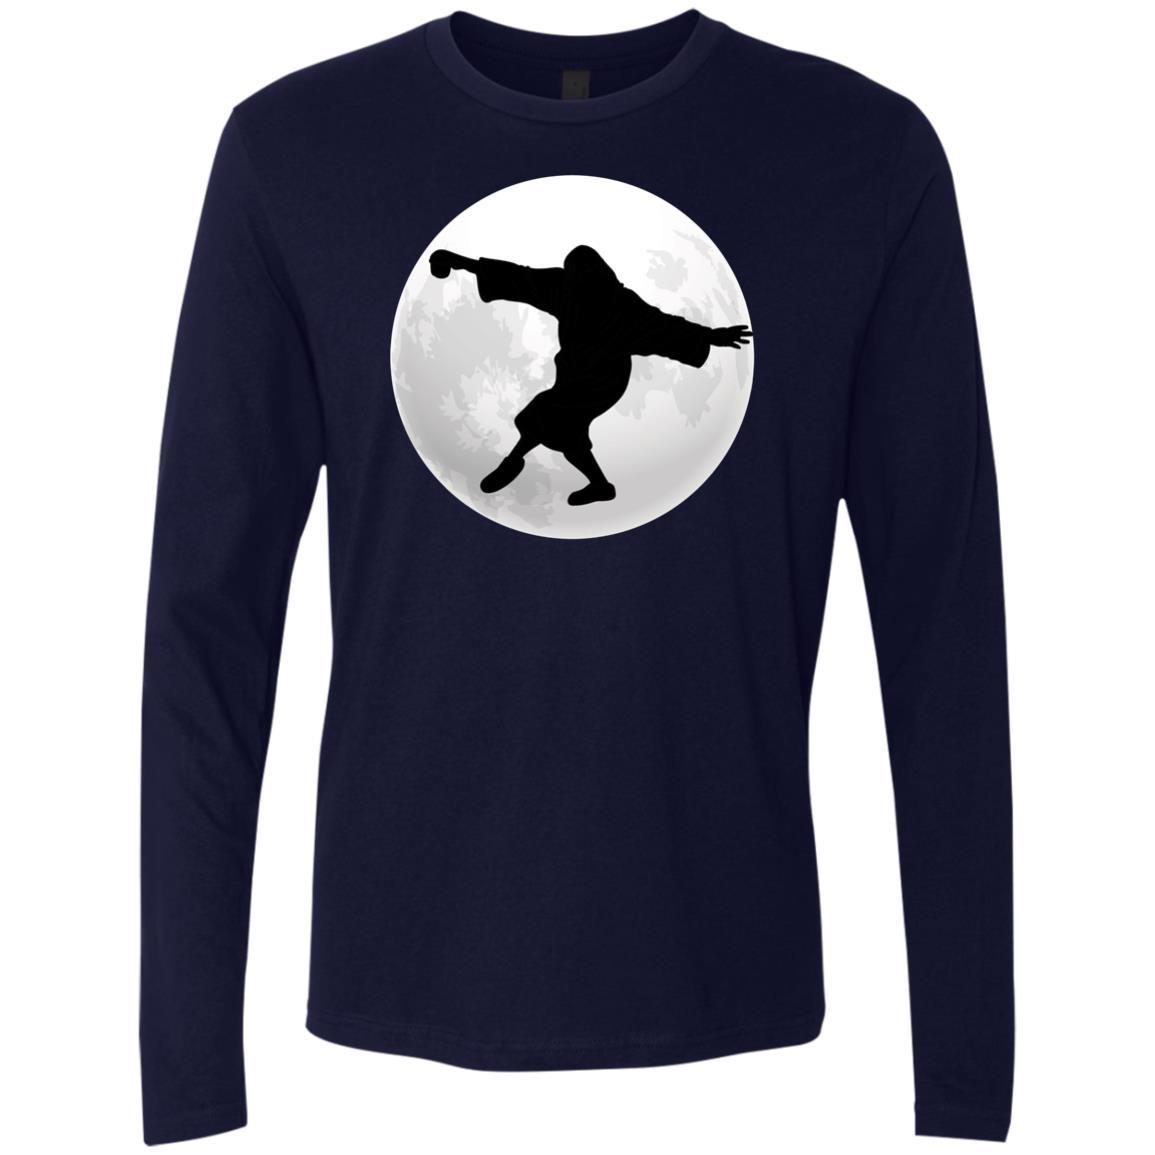 T-Shirts - Abide Moon Premium Long Sleeve